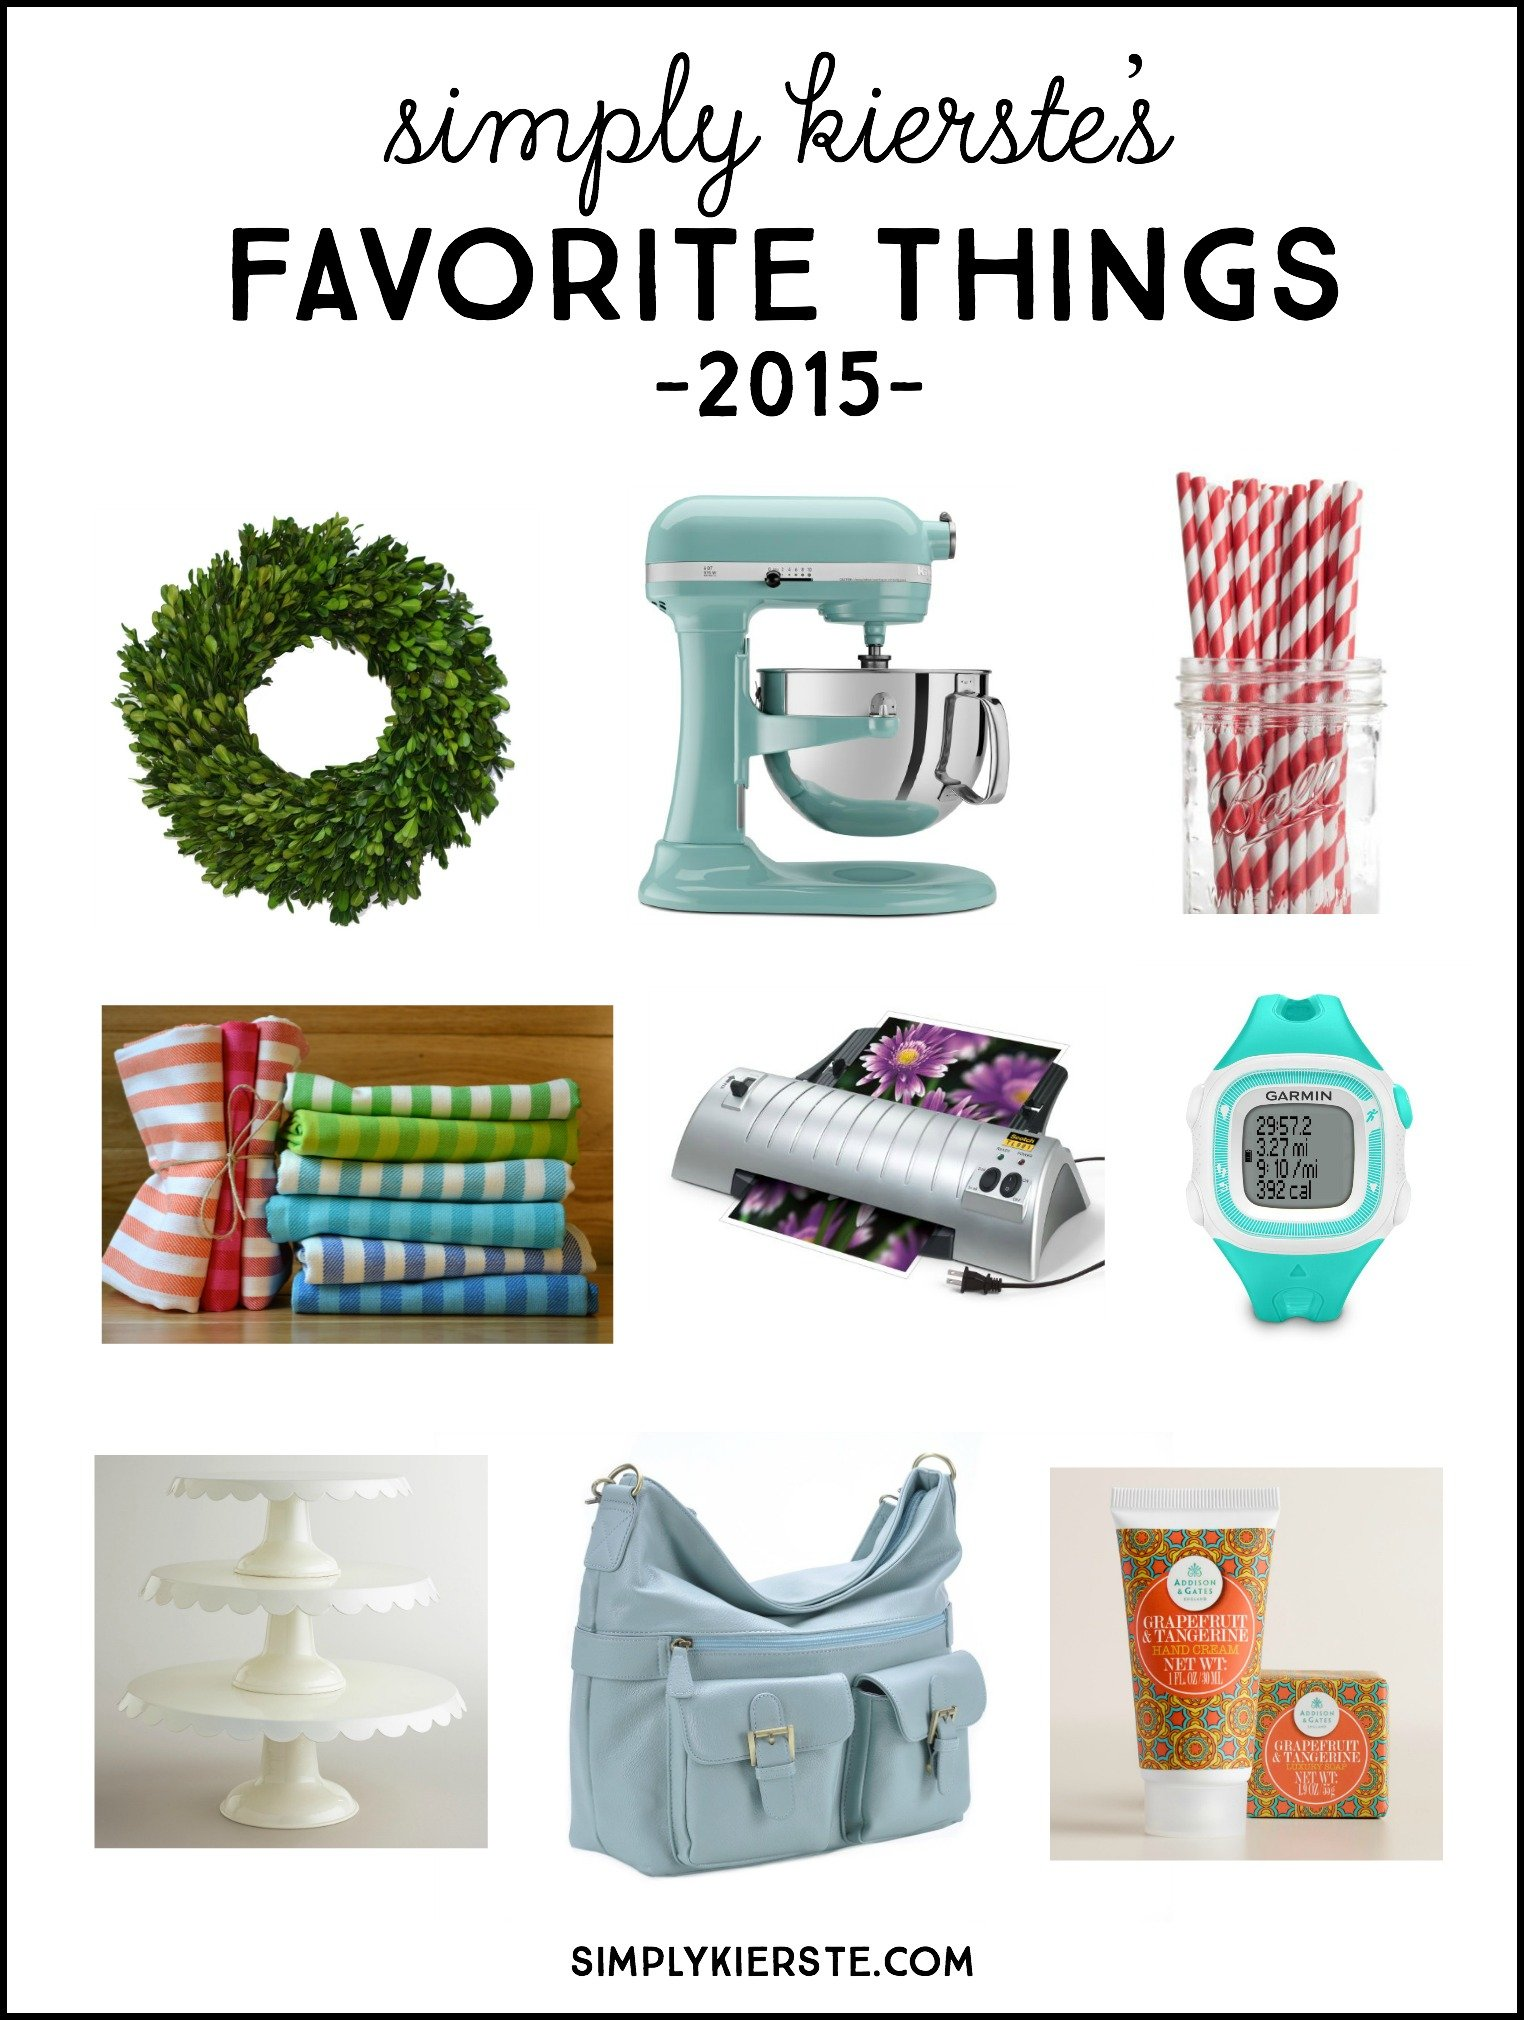 Simply Kierste's Favorite Things 2015 | simplyikierste.com